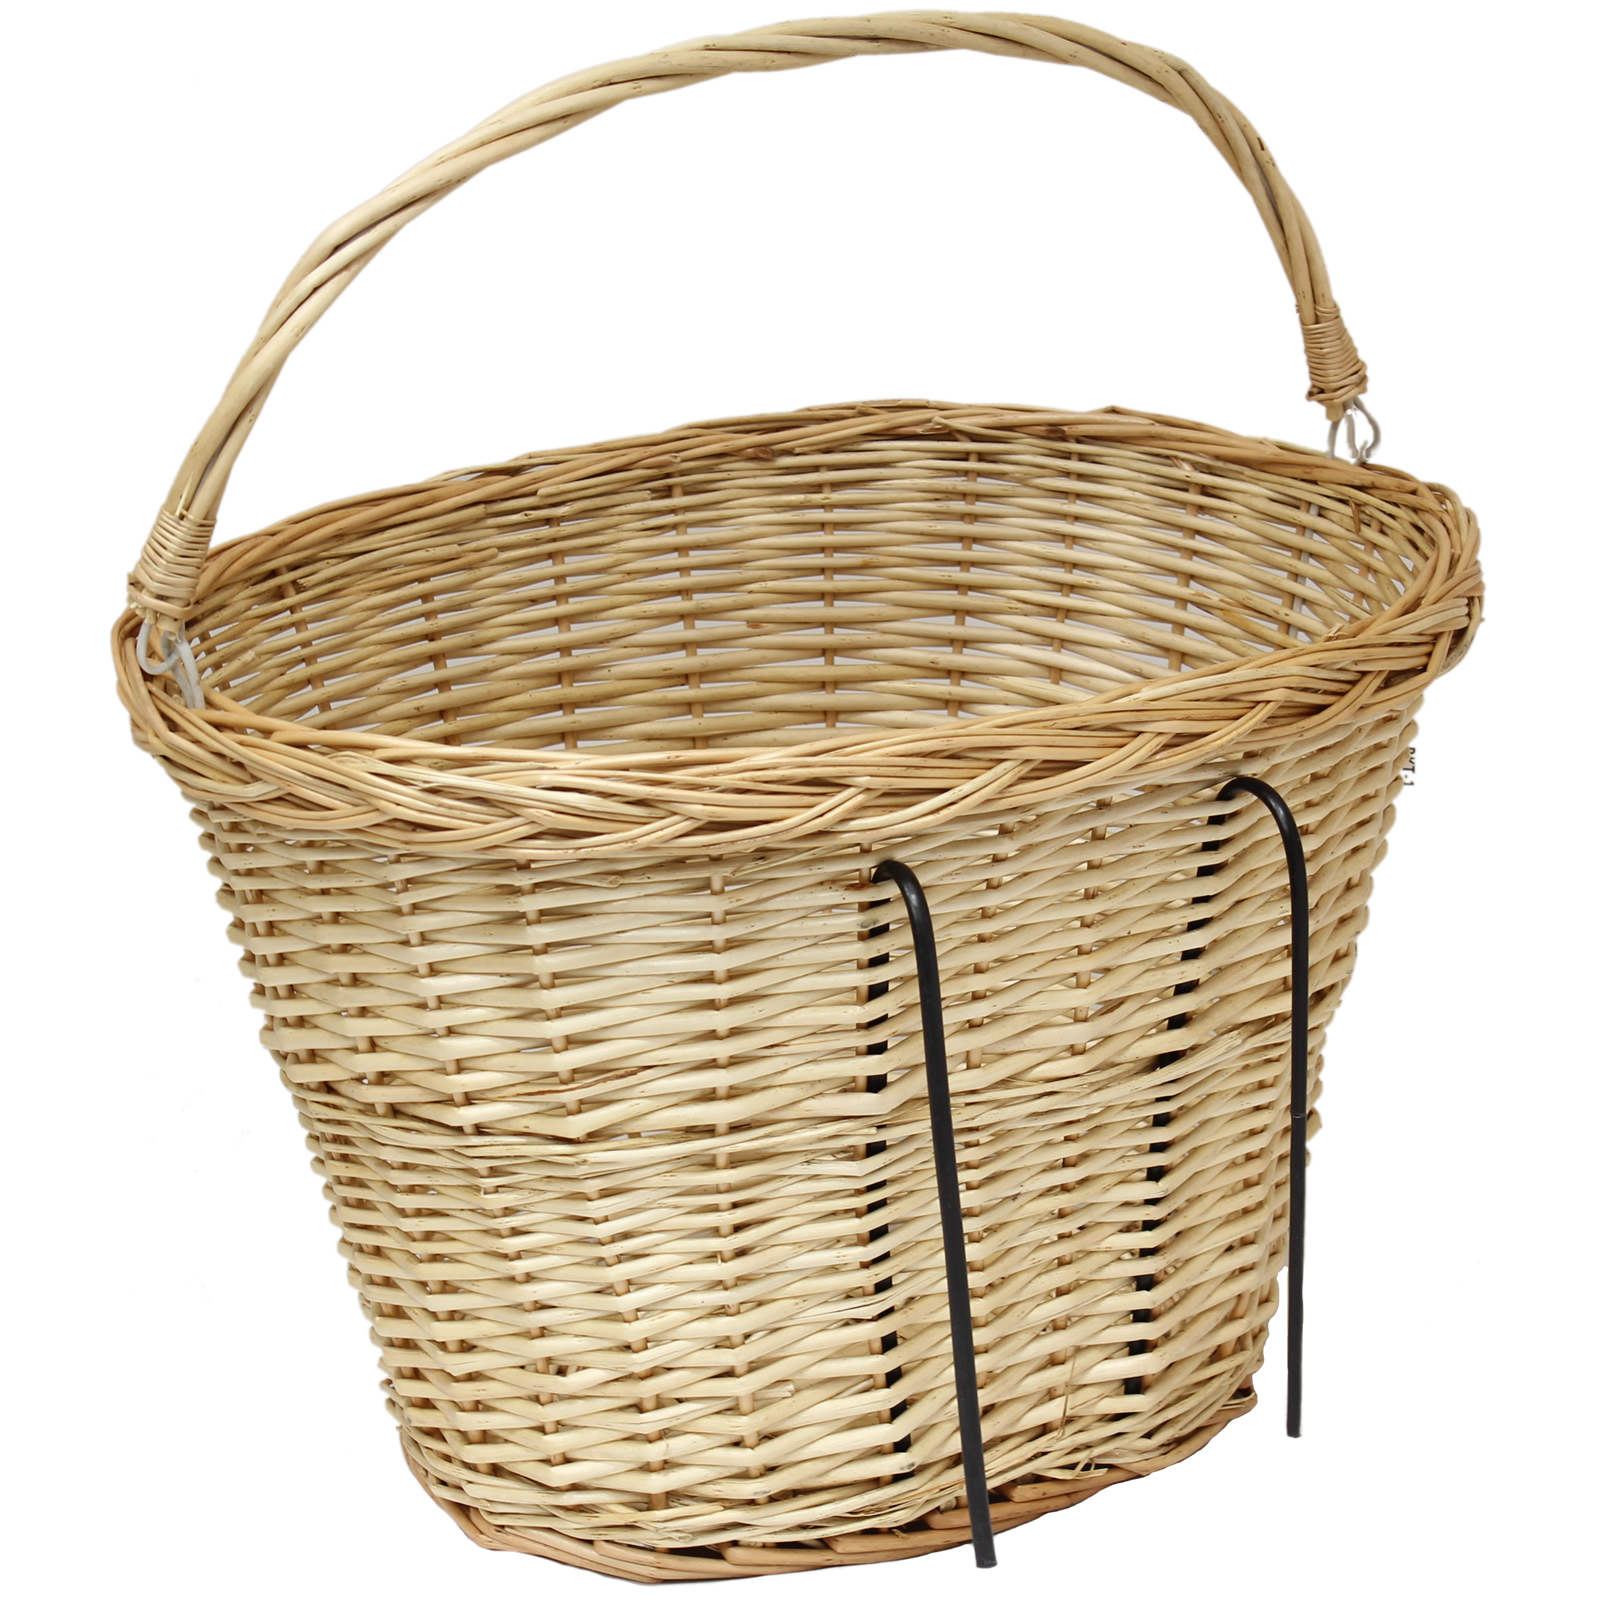 BICYCLE WICKER SHOPPING BASKET WITH CARRY HANDLE FOR FRONT OF BIKE/CYCLE Enlarged Preview